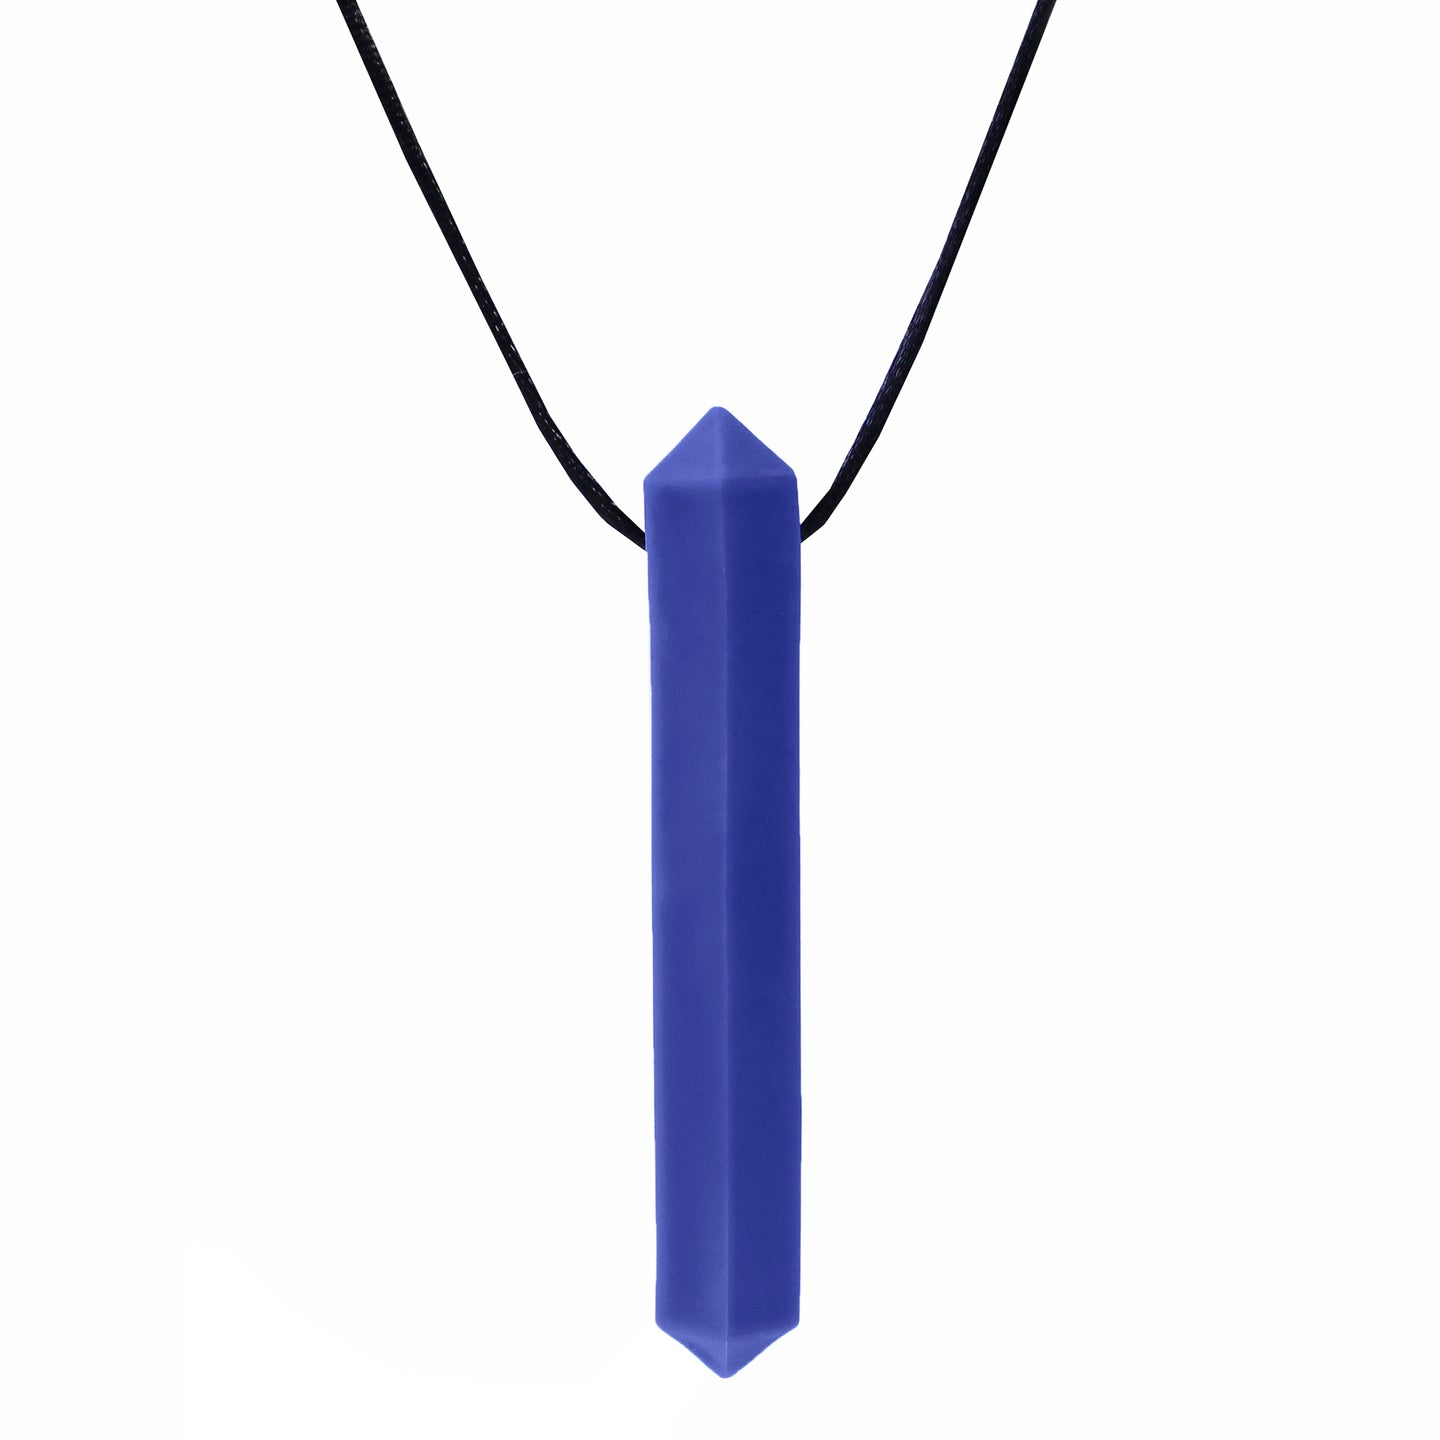 ARK's Krypto-Bite® Chewable Gem Necklace